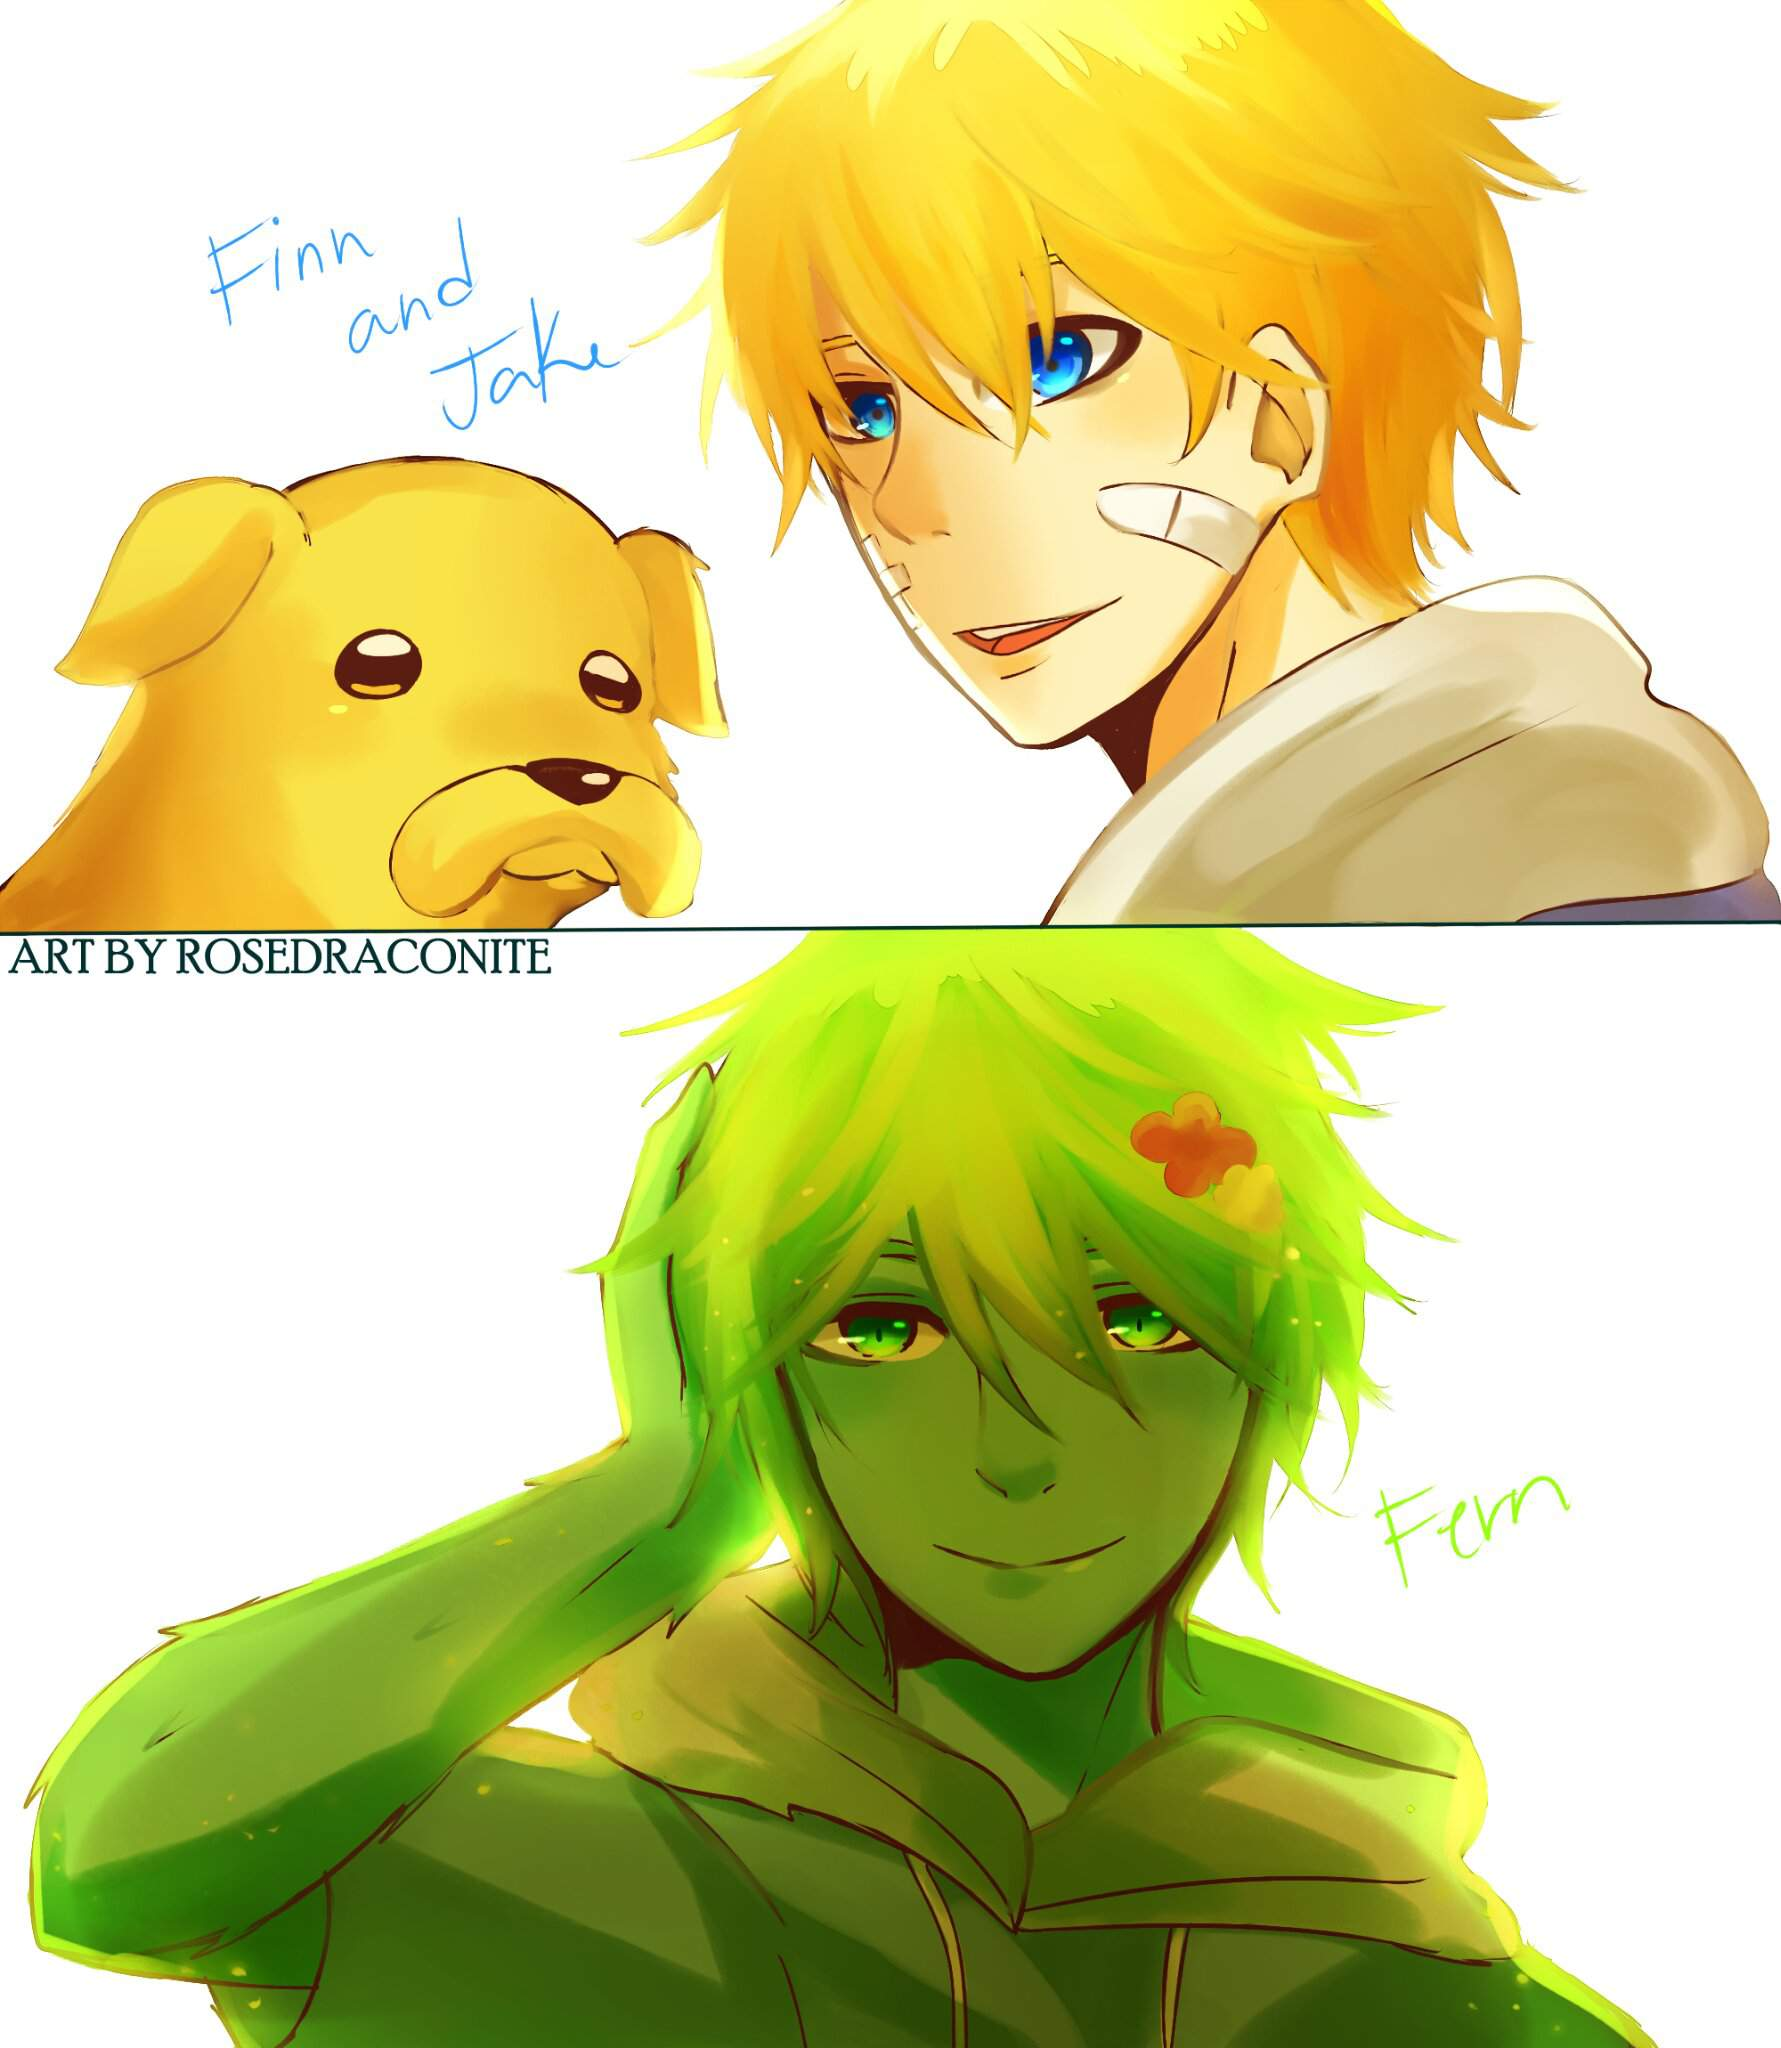 Finn And Fern As Well As Jake Fanart Adventure Time Amino Amino